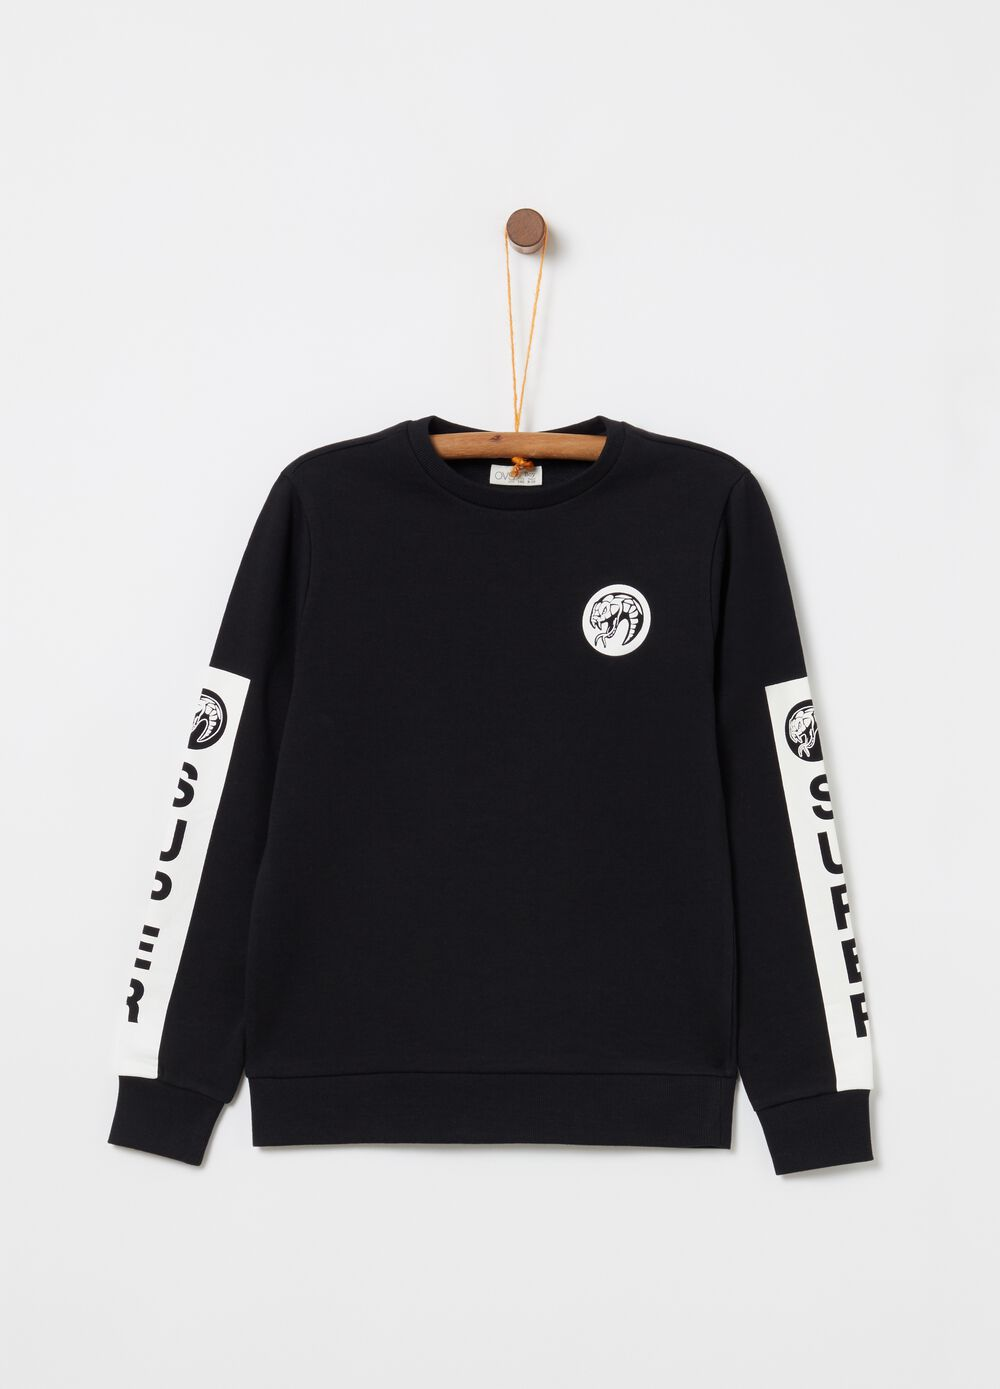 100% cotton ribbed sweatshirt with print